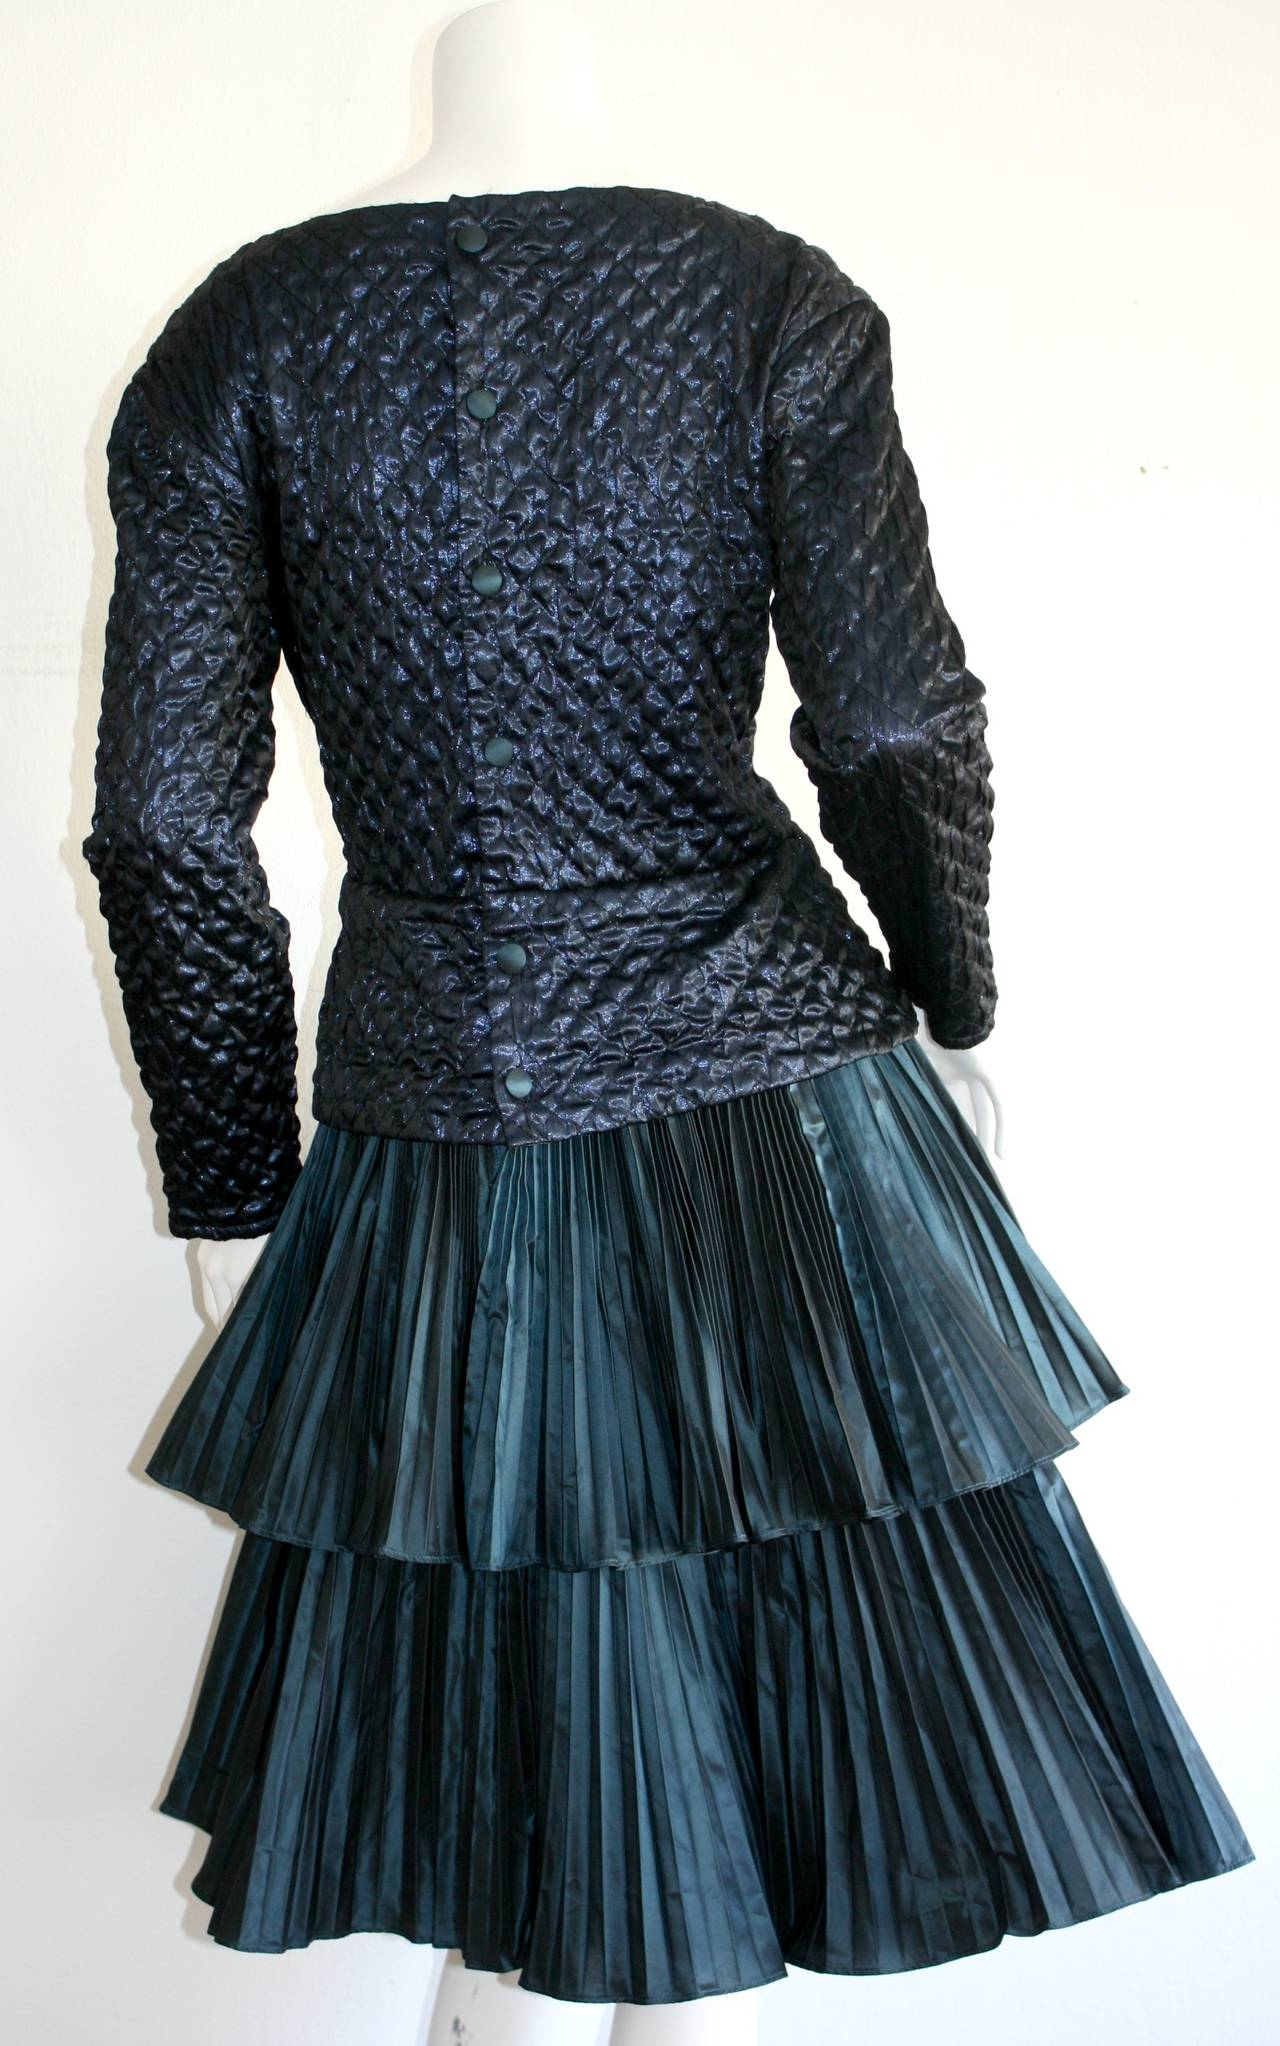 Bernard Perris Beautiful Navy Blue Metallic Quilted Accordion Tiered Dress For Sale 4